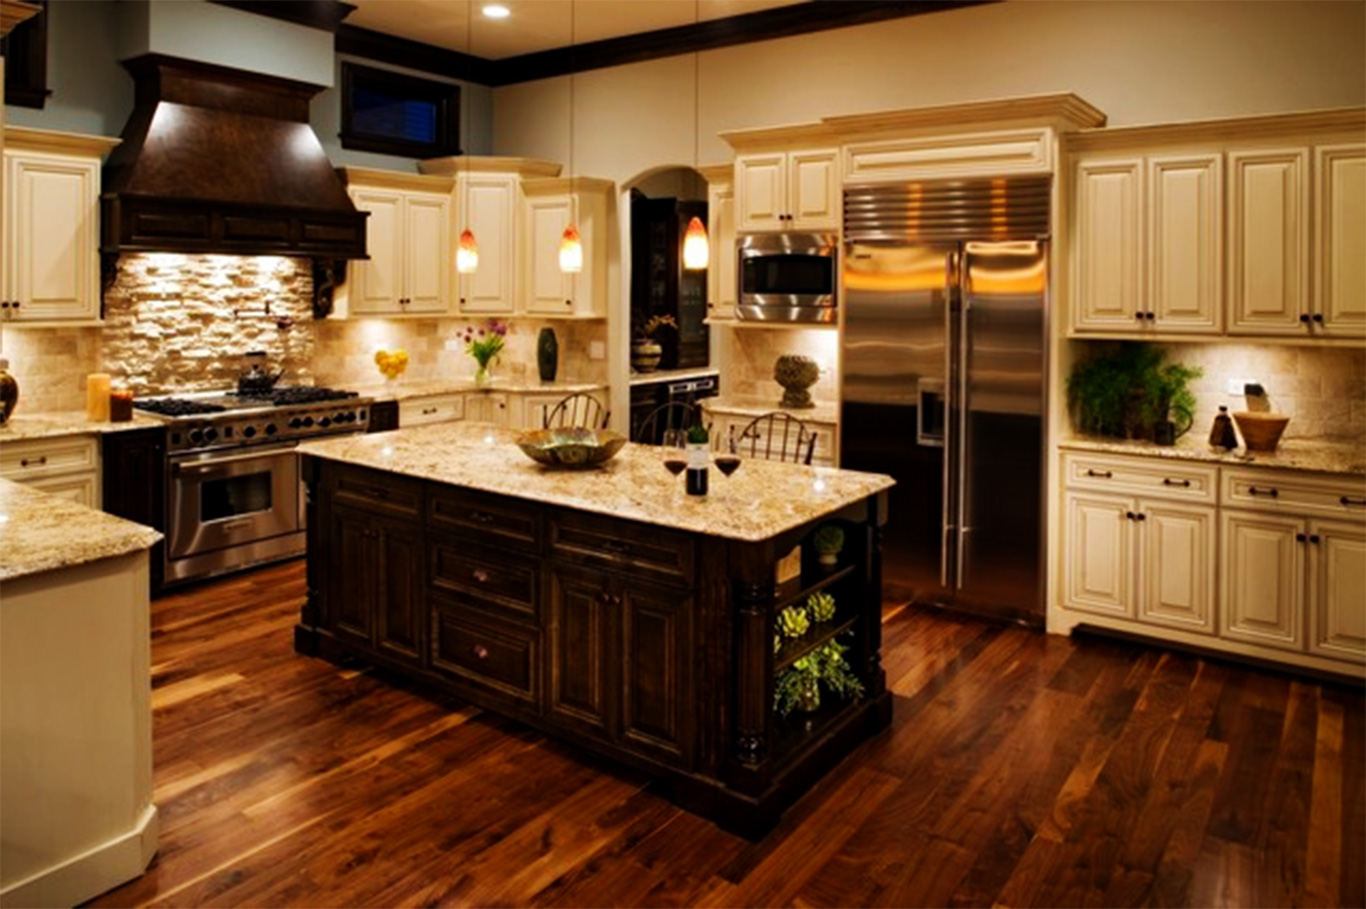 11 awesome type of kitchen design ideas On kitchen styles